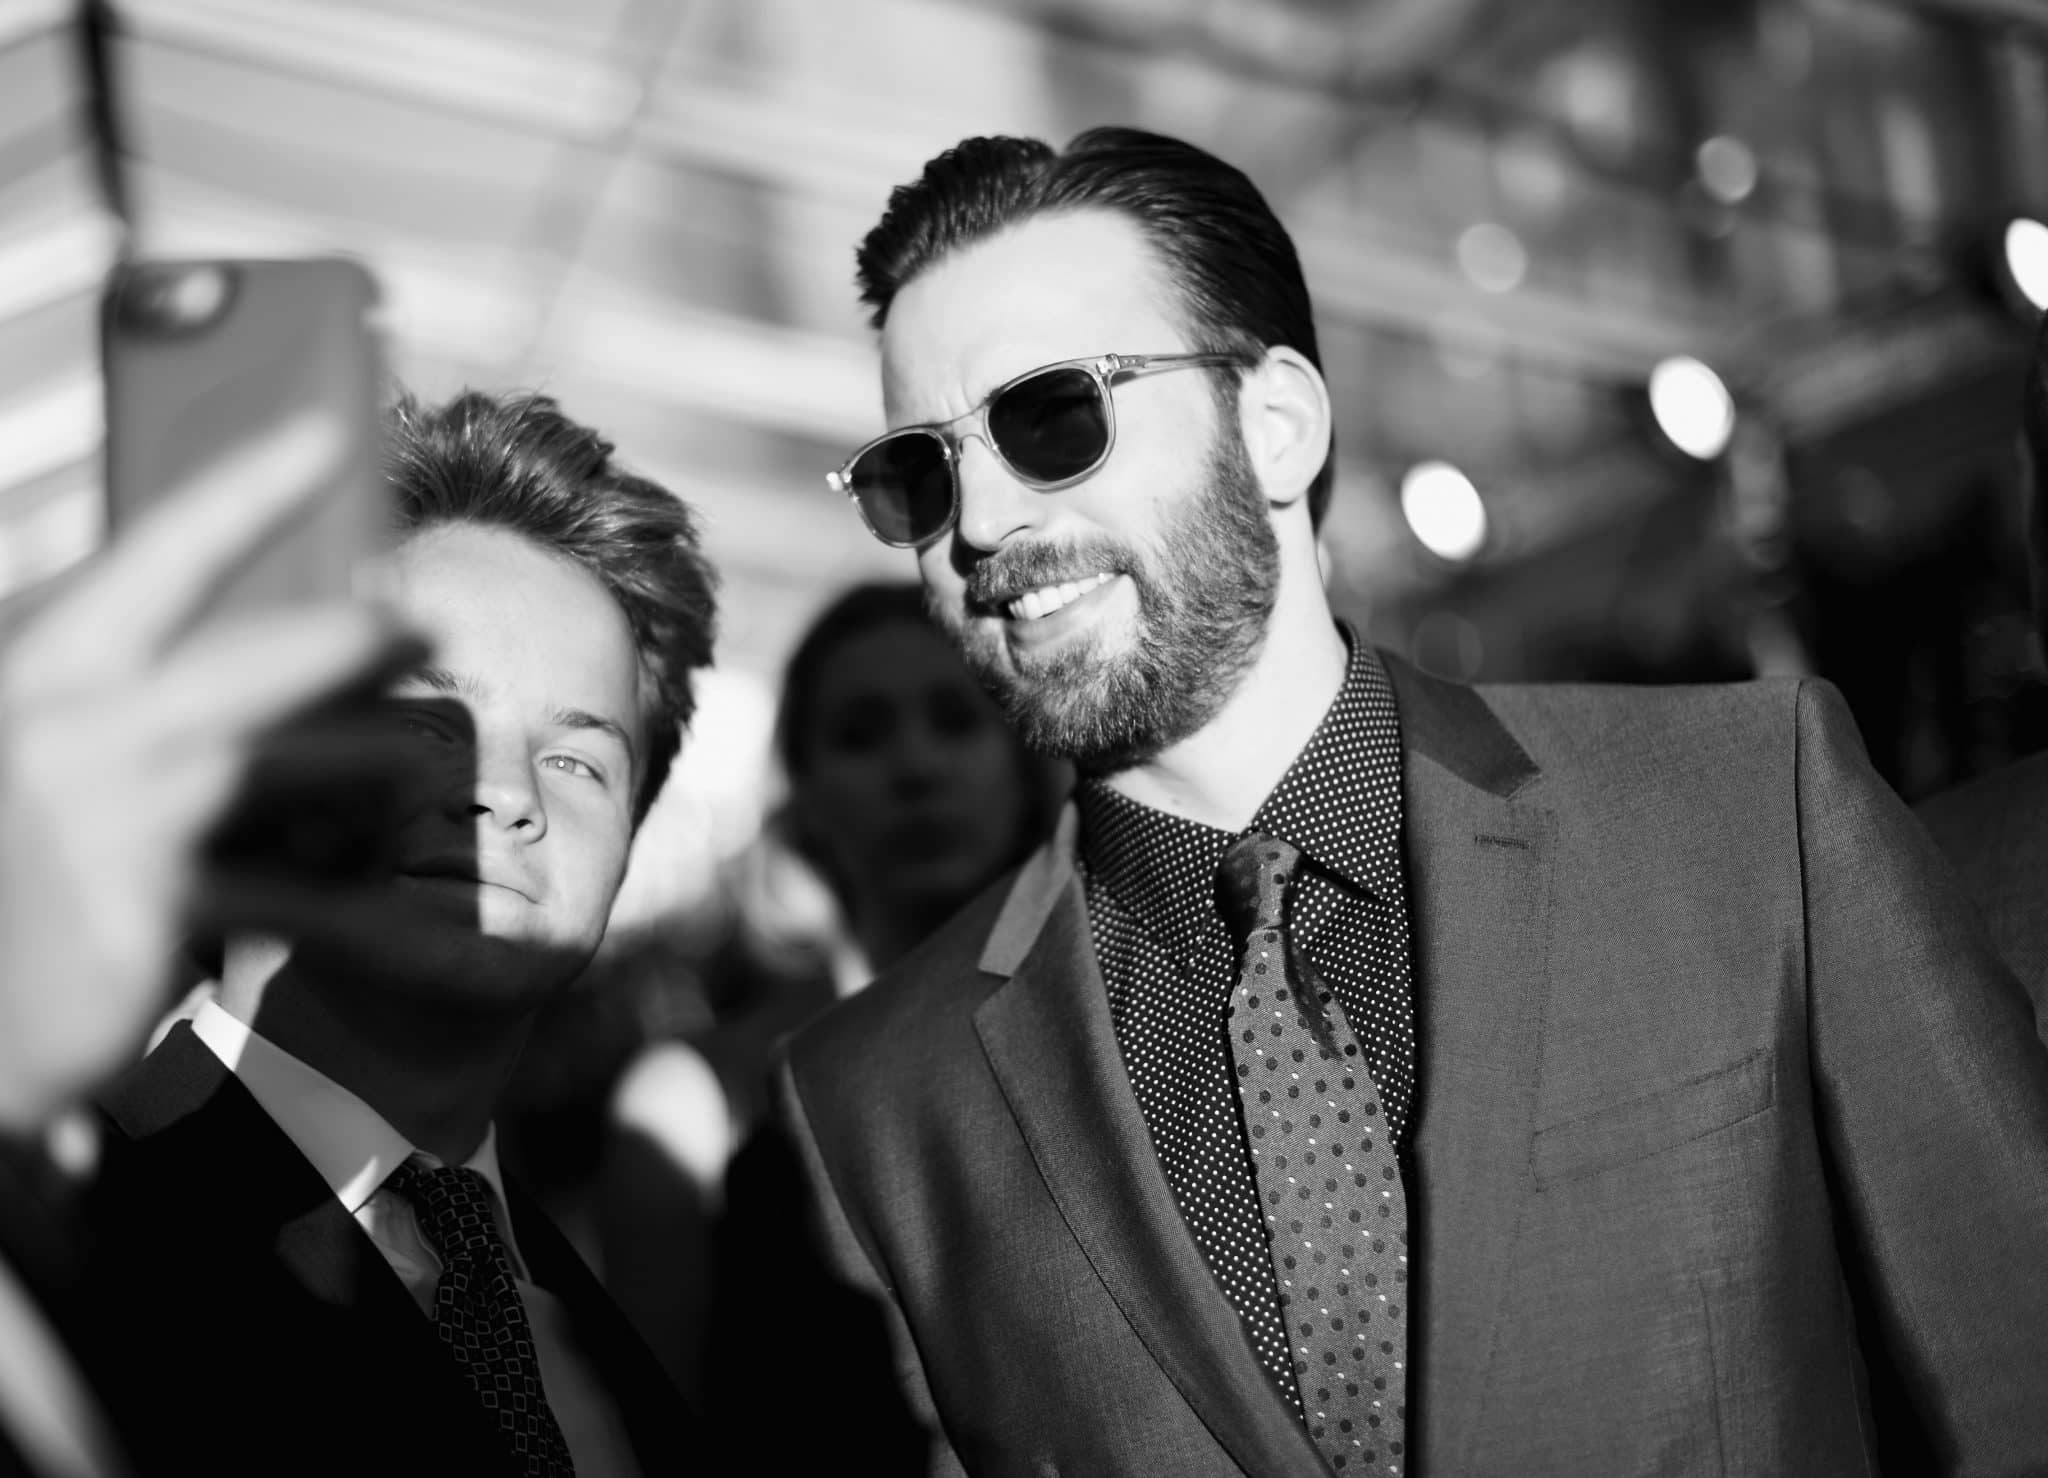 """HOLLYWOOD, CALIFORNIA - APRIL 12: (EDITORS NOTE: Image has been shot in black and white..Color version not available.) Actor Chris Evans takes a selfie at The World Premiere of Marvel's """"Captain America: Civil War"""" at Dolby Theatre on April 12, 2016 in Los Angeles, California. (Photo by Charley Gallay/Getty Images for Disney) *** Local Caption *** Chris Evans"""